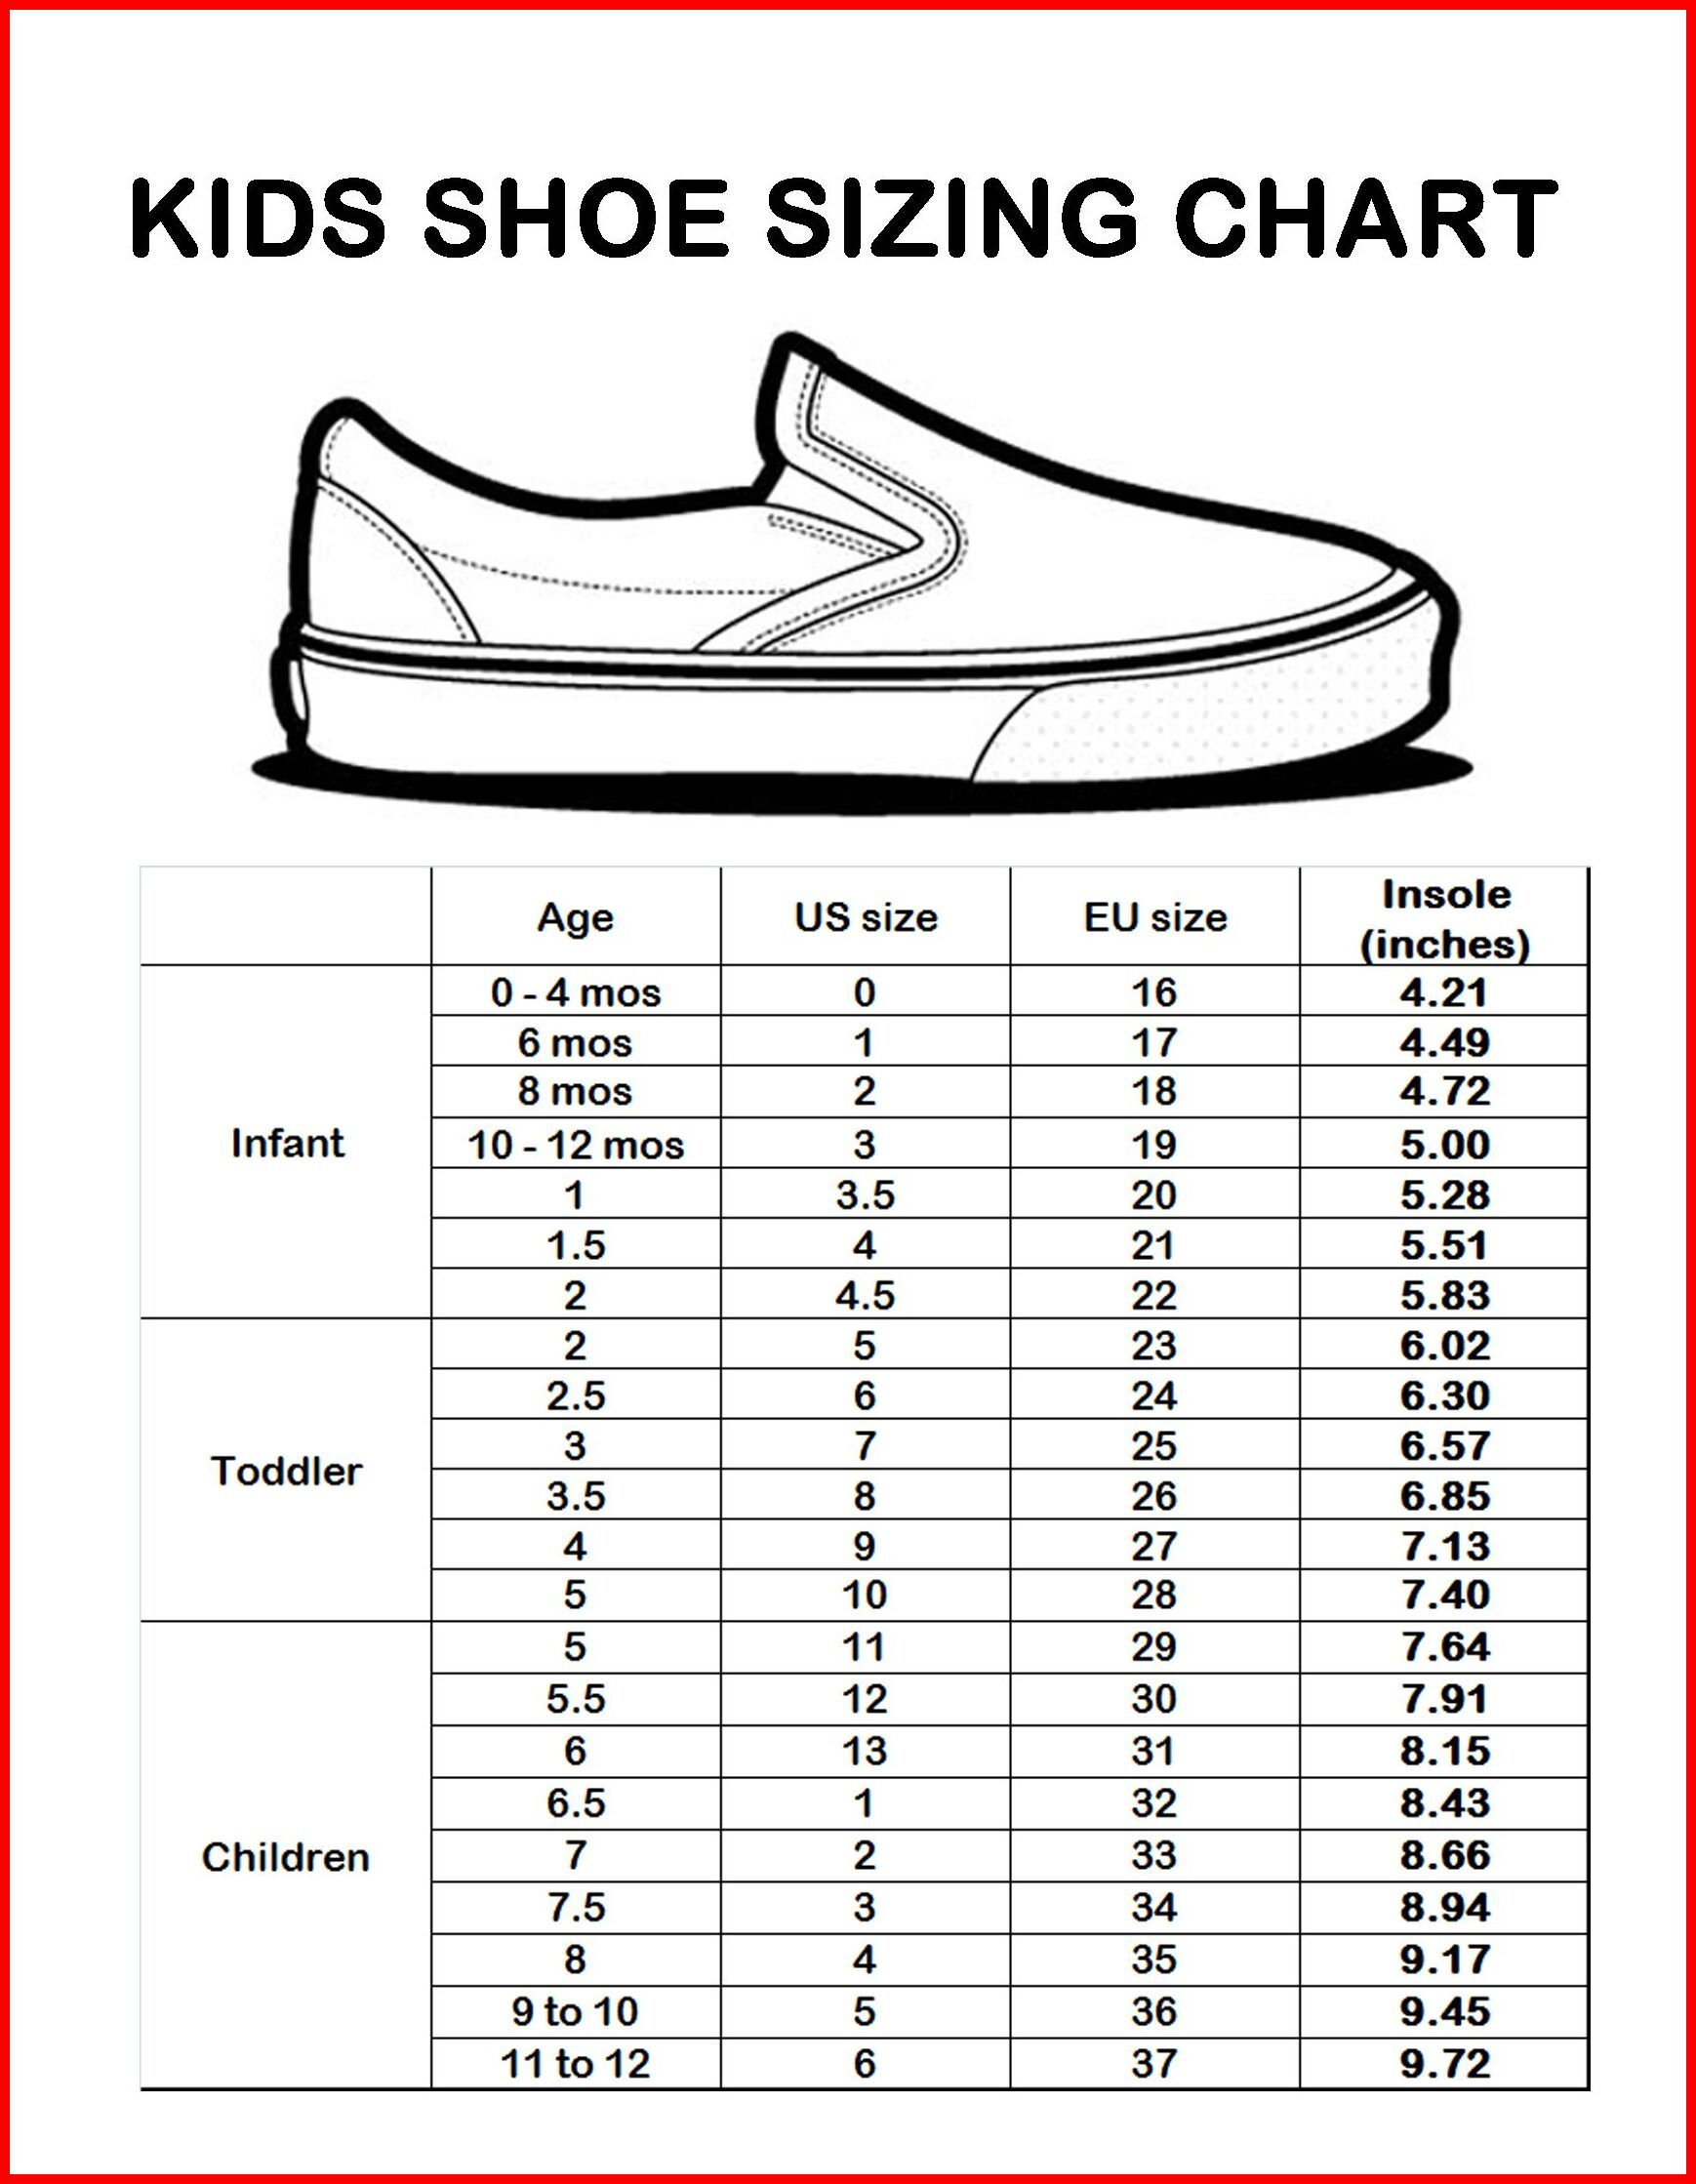 18 month old baby shoe size